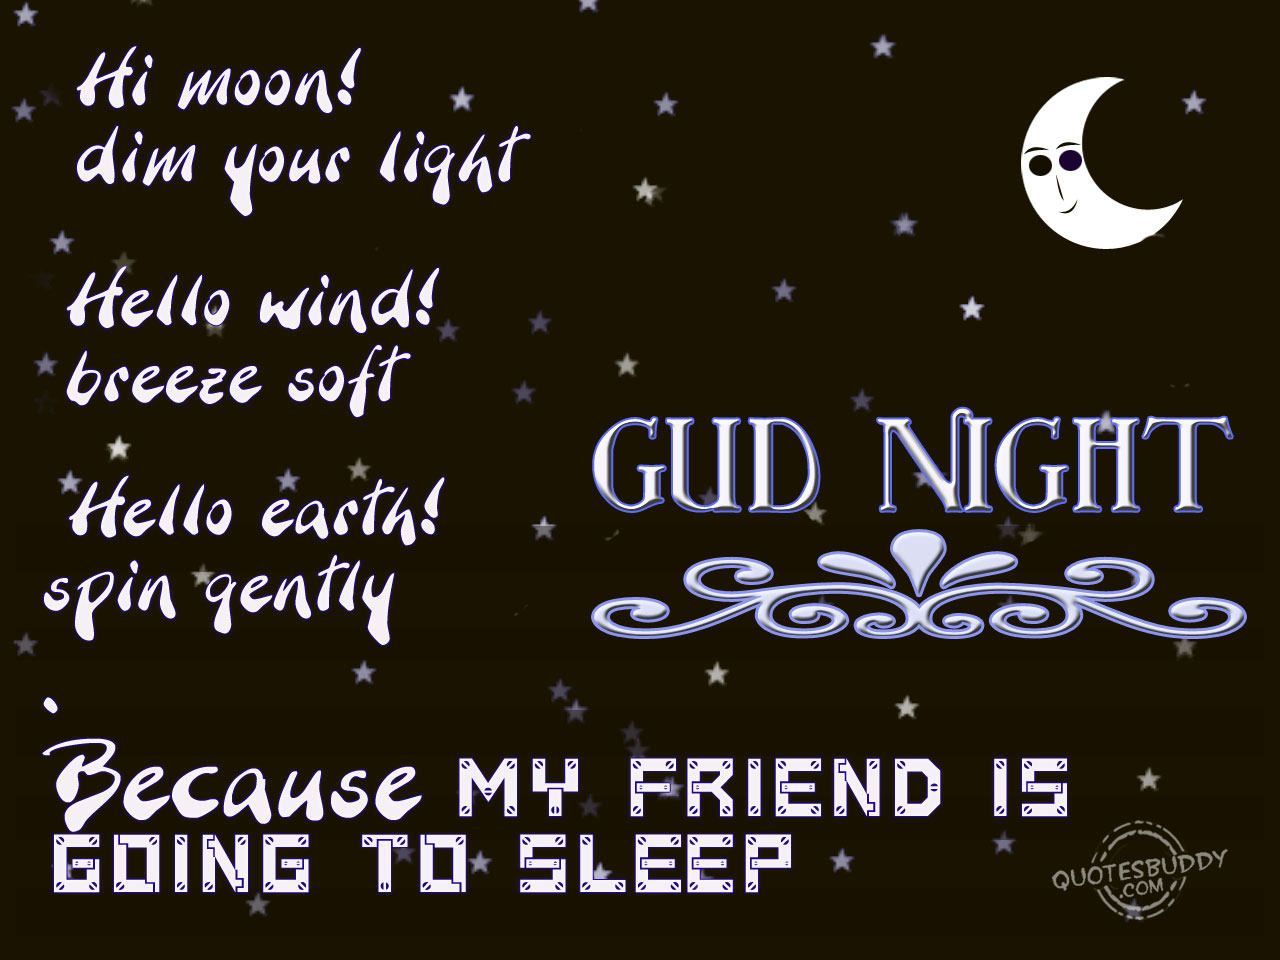 Facebook Friendship Quotes Good Night Friends Quotes My Artwork